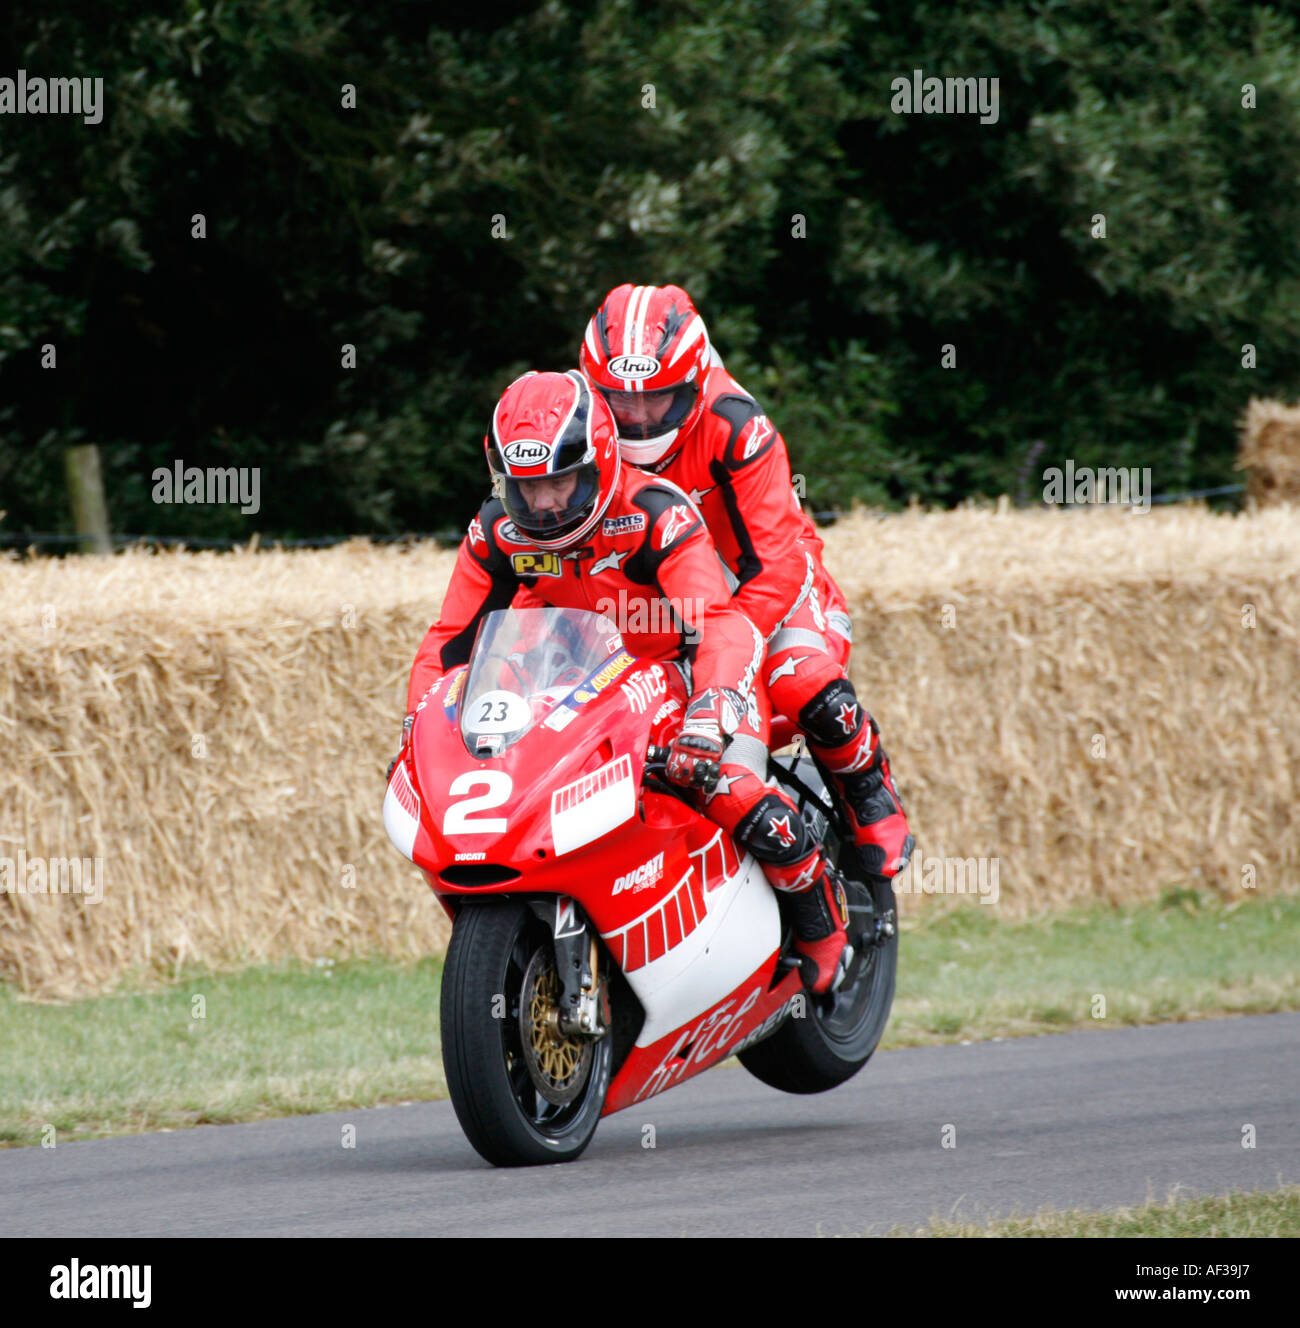 2004 Ducati Desmosedici Two-seater on the hillclimb at the Goodwood Festival of Speed, Sussex, England. - Stock Image